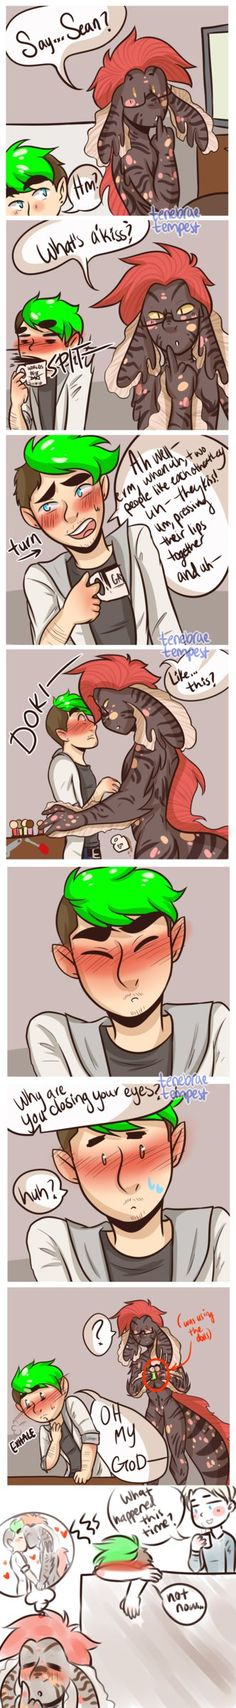 Innocent Intentions by AllItalianRejects | I have literally no idea what this is | jacksepticeye